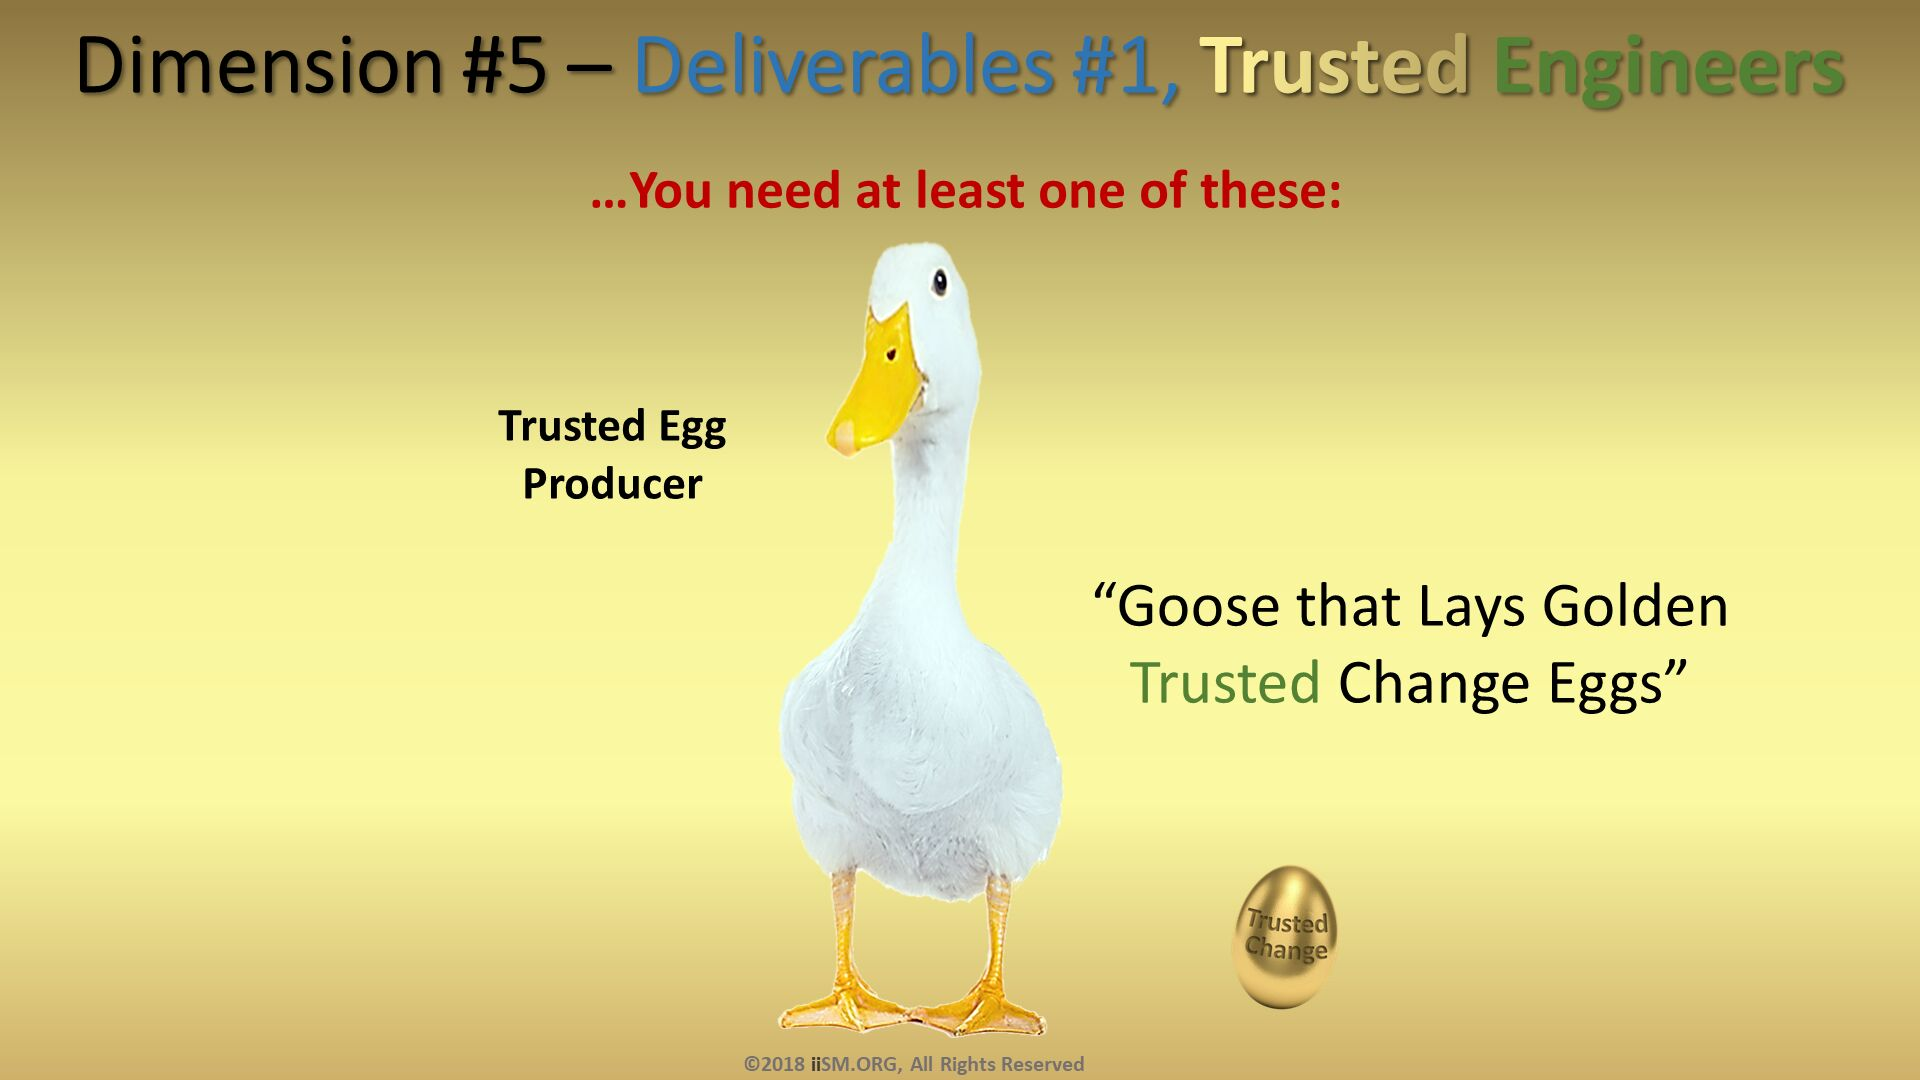 "Dimension #5 – Deliverables #1, Trusted Engineers. …You need at least one of these: . ""Goose that Lays Golden Trusted Change Eggs"". Trusted Egg Producer. ©2018 iiSM.ORG, All Rights Reserved."